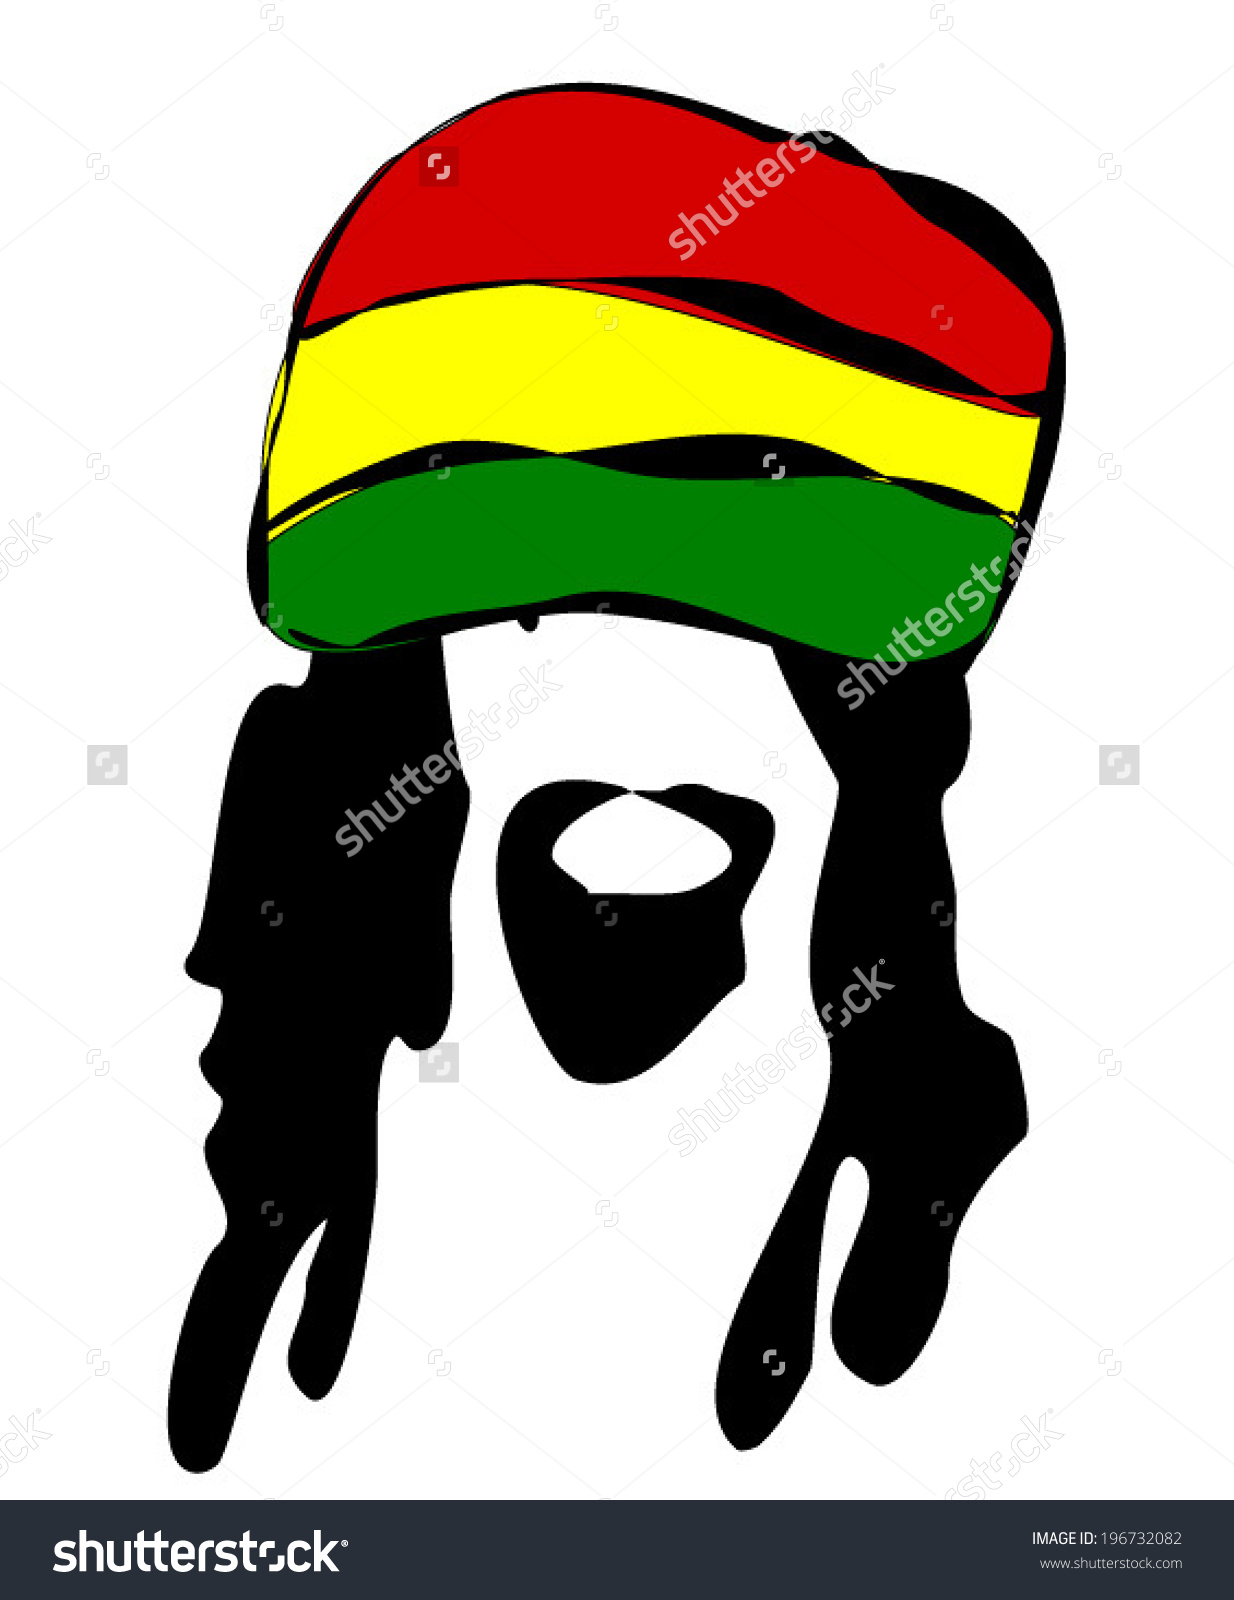 Jamaican dreadlocks clipart.